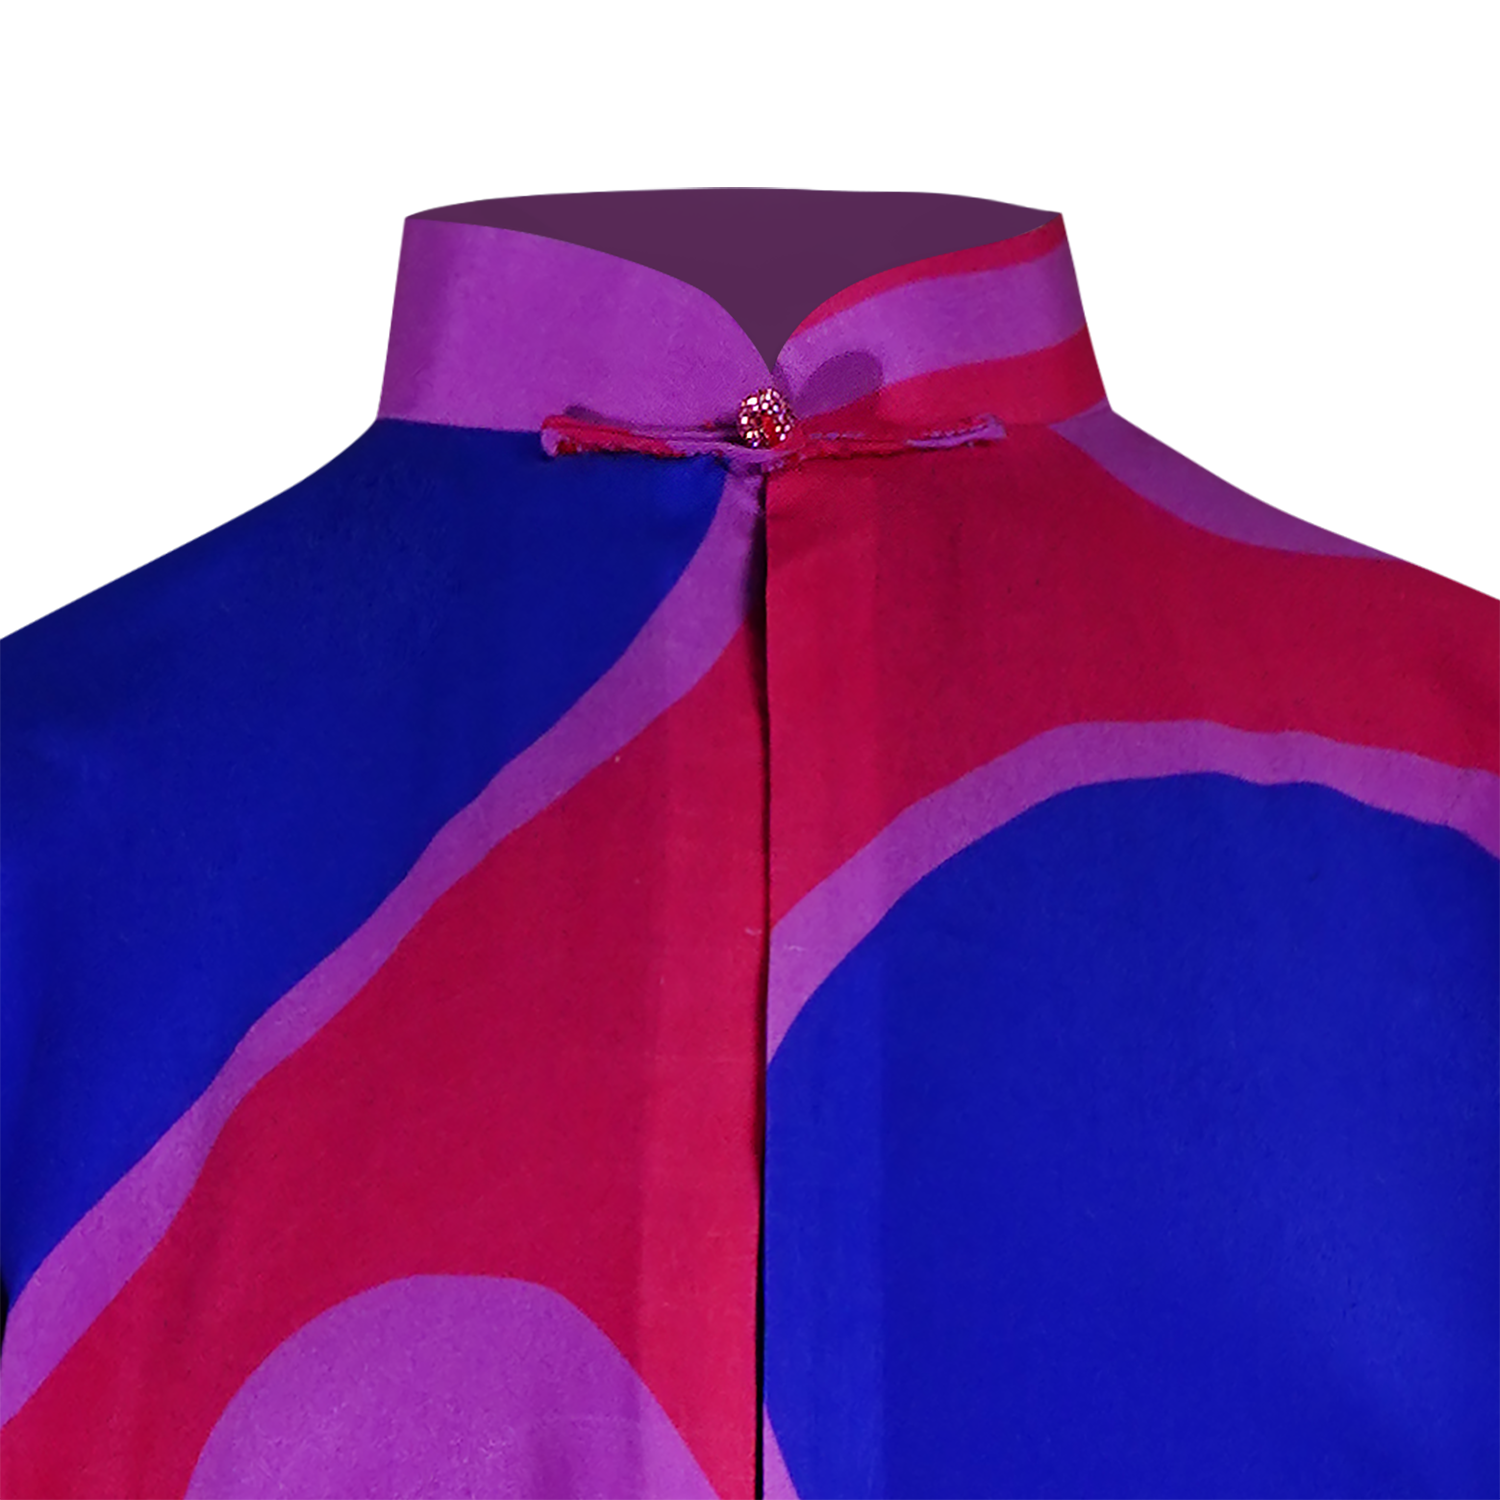 【PEARL OF HK】100% Silk Reversible Mini Tang Jacket - THE SPARKLE COLLECTION by GERMAN POOL